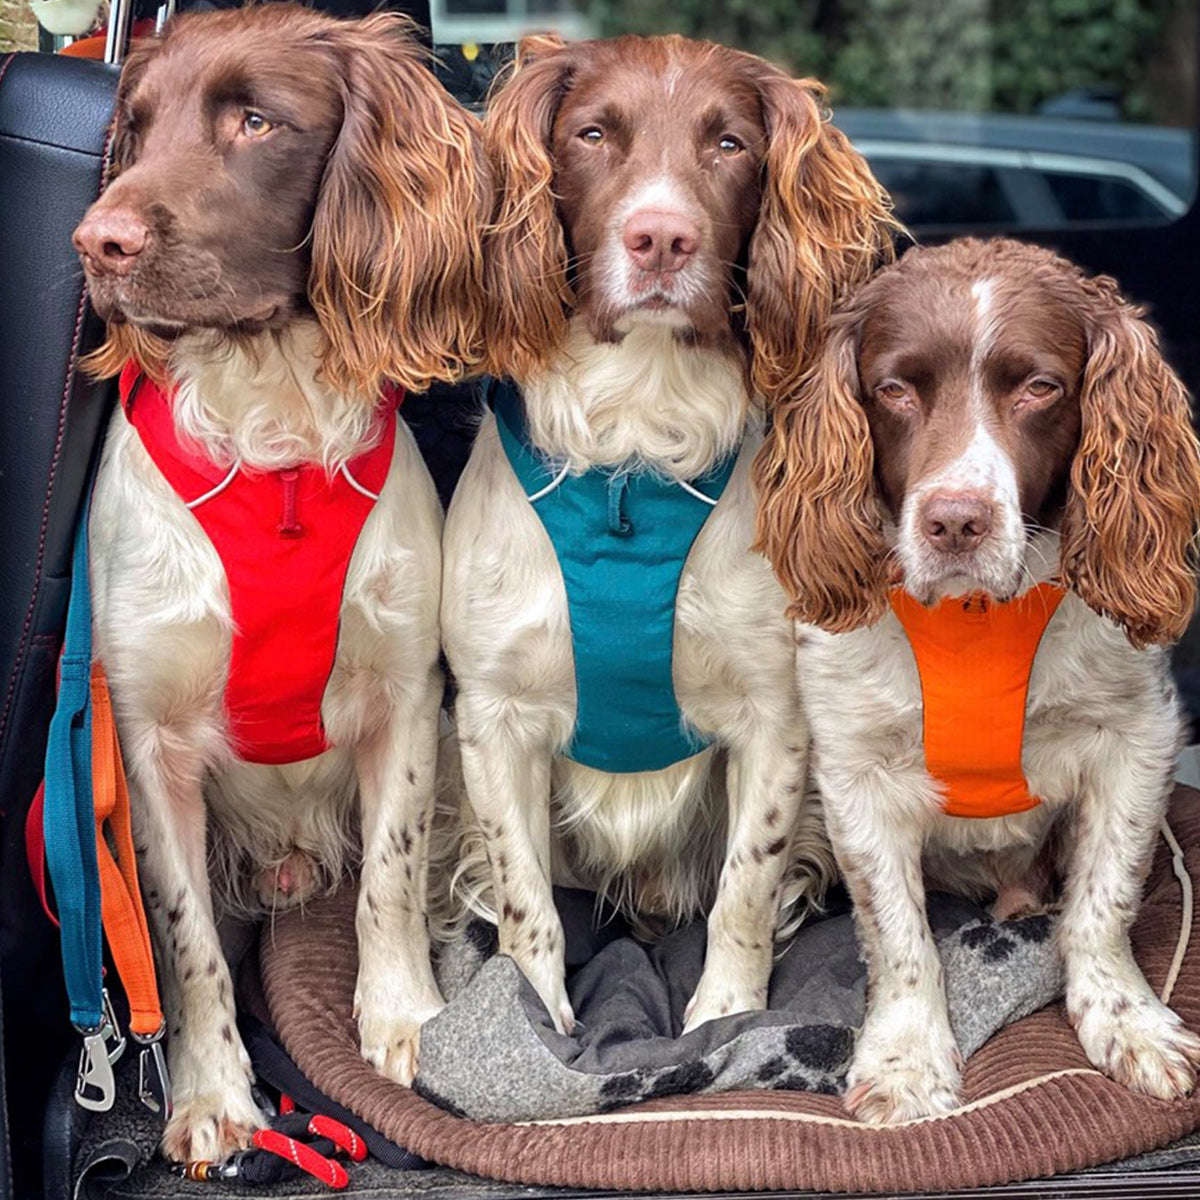 Kerry's three dogs in the back of the car.